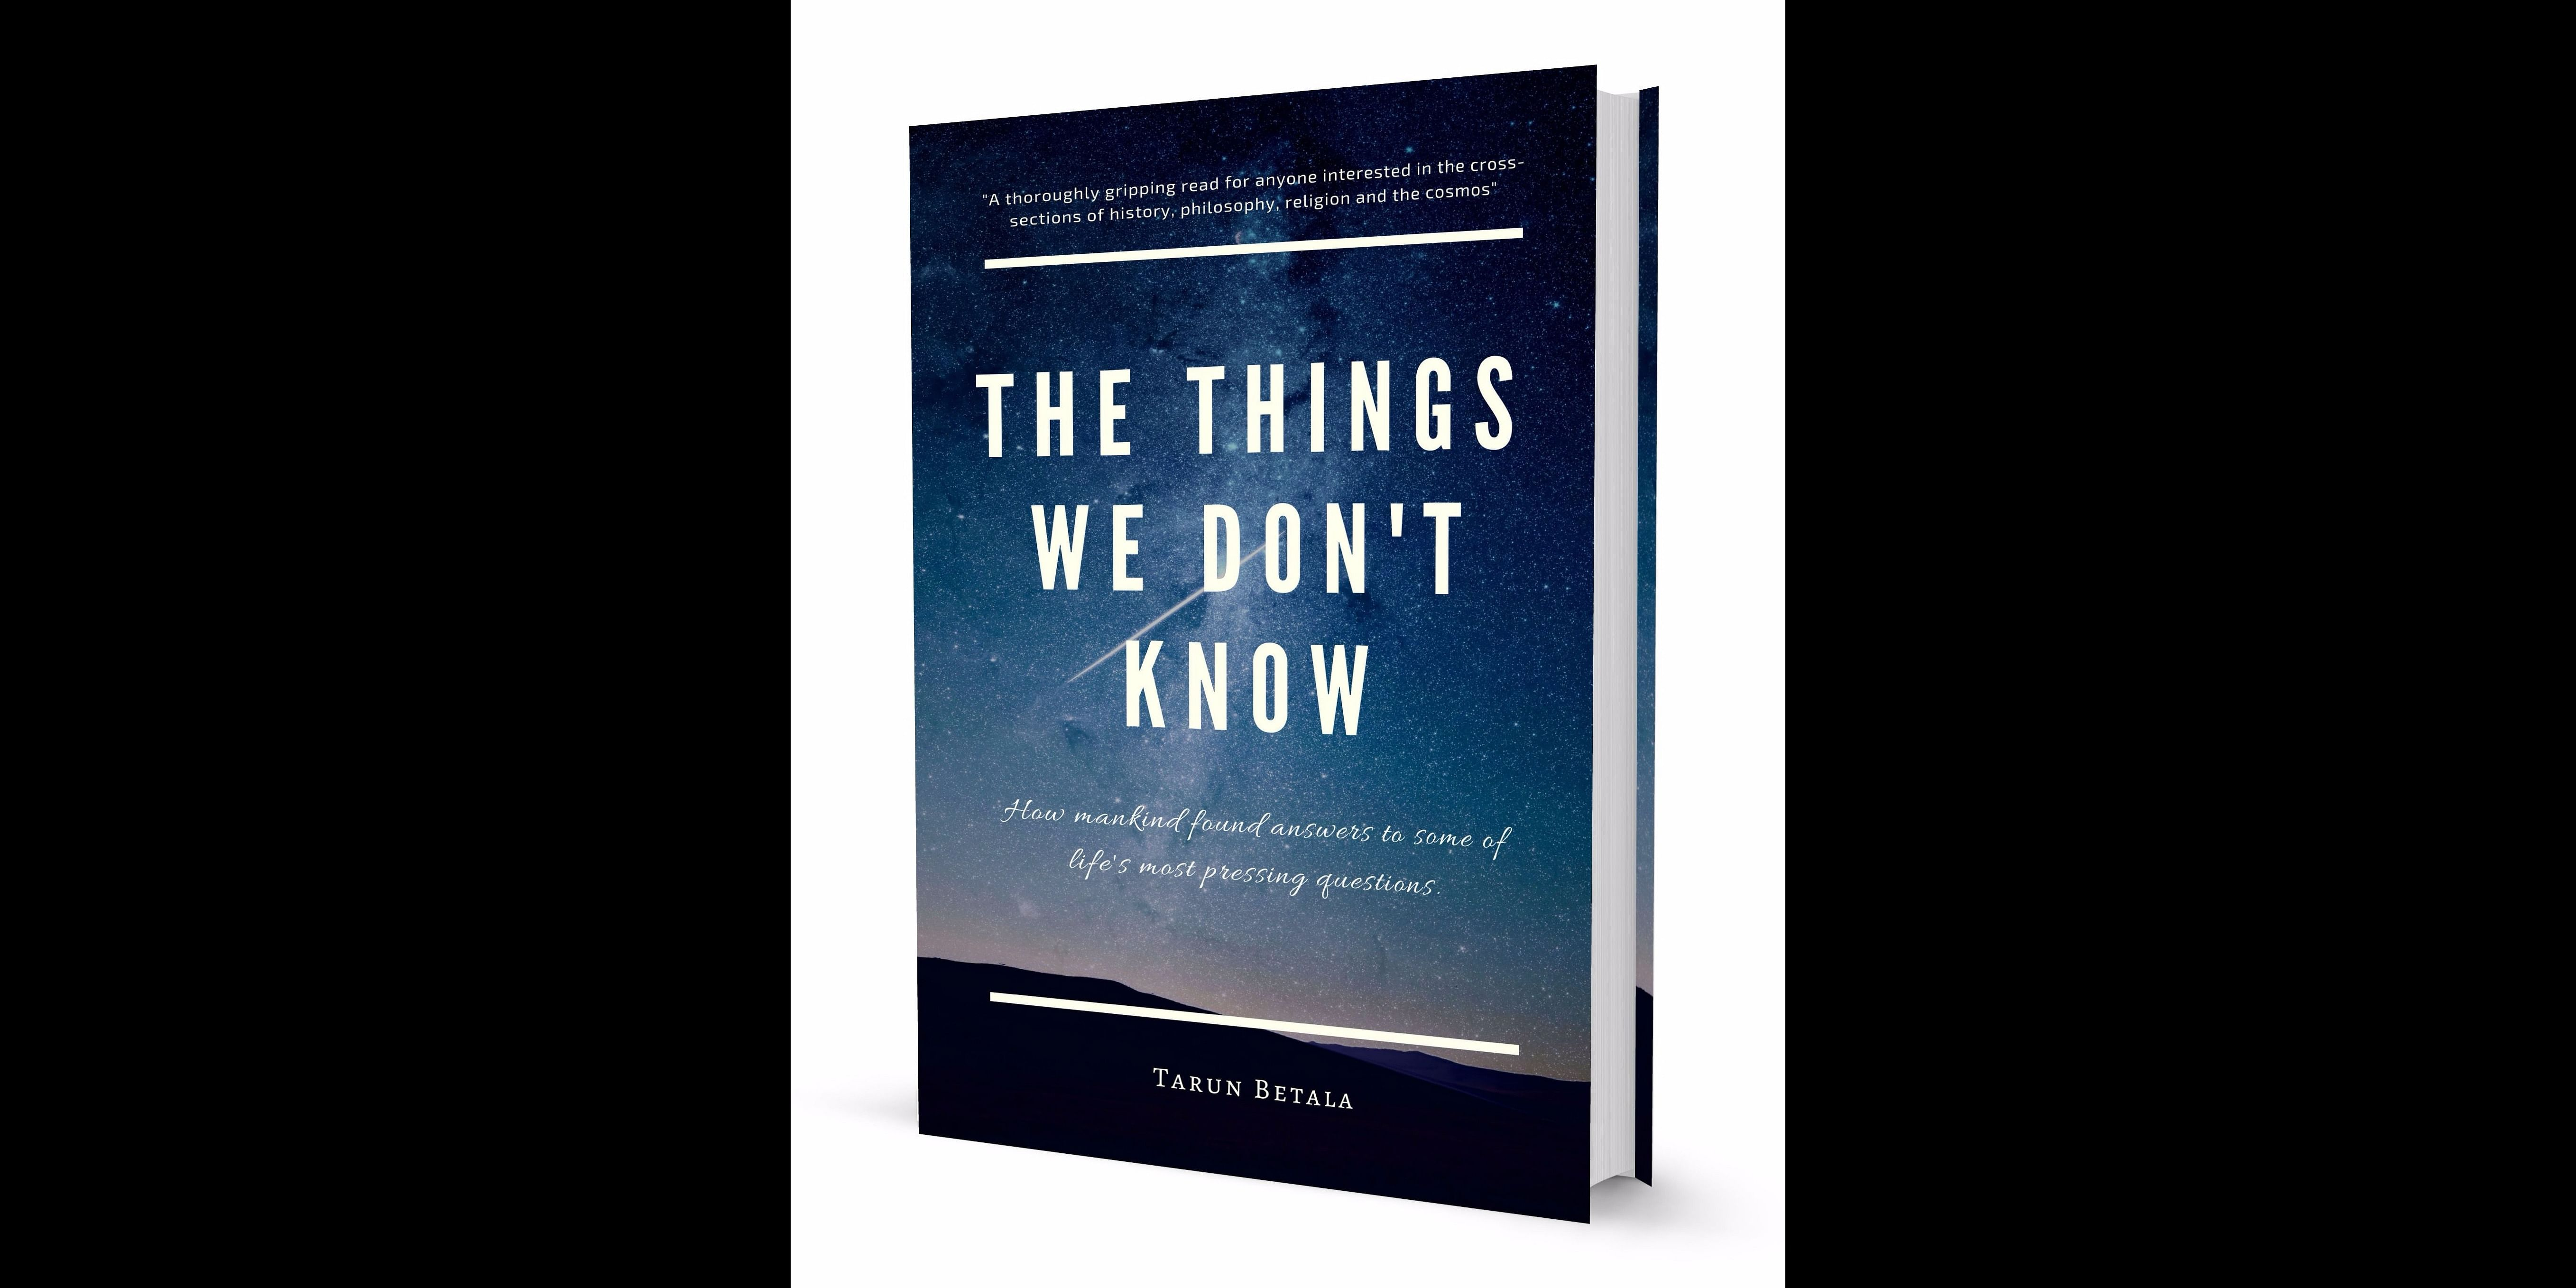 The Things We Don't Know - Tarun Betala